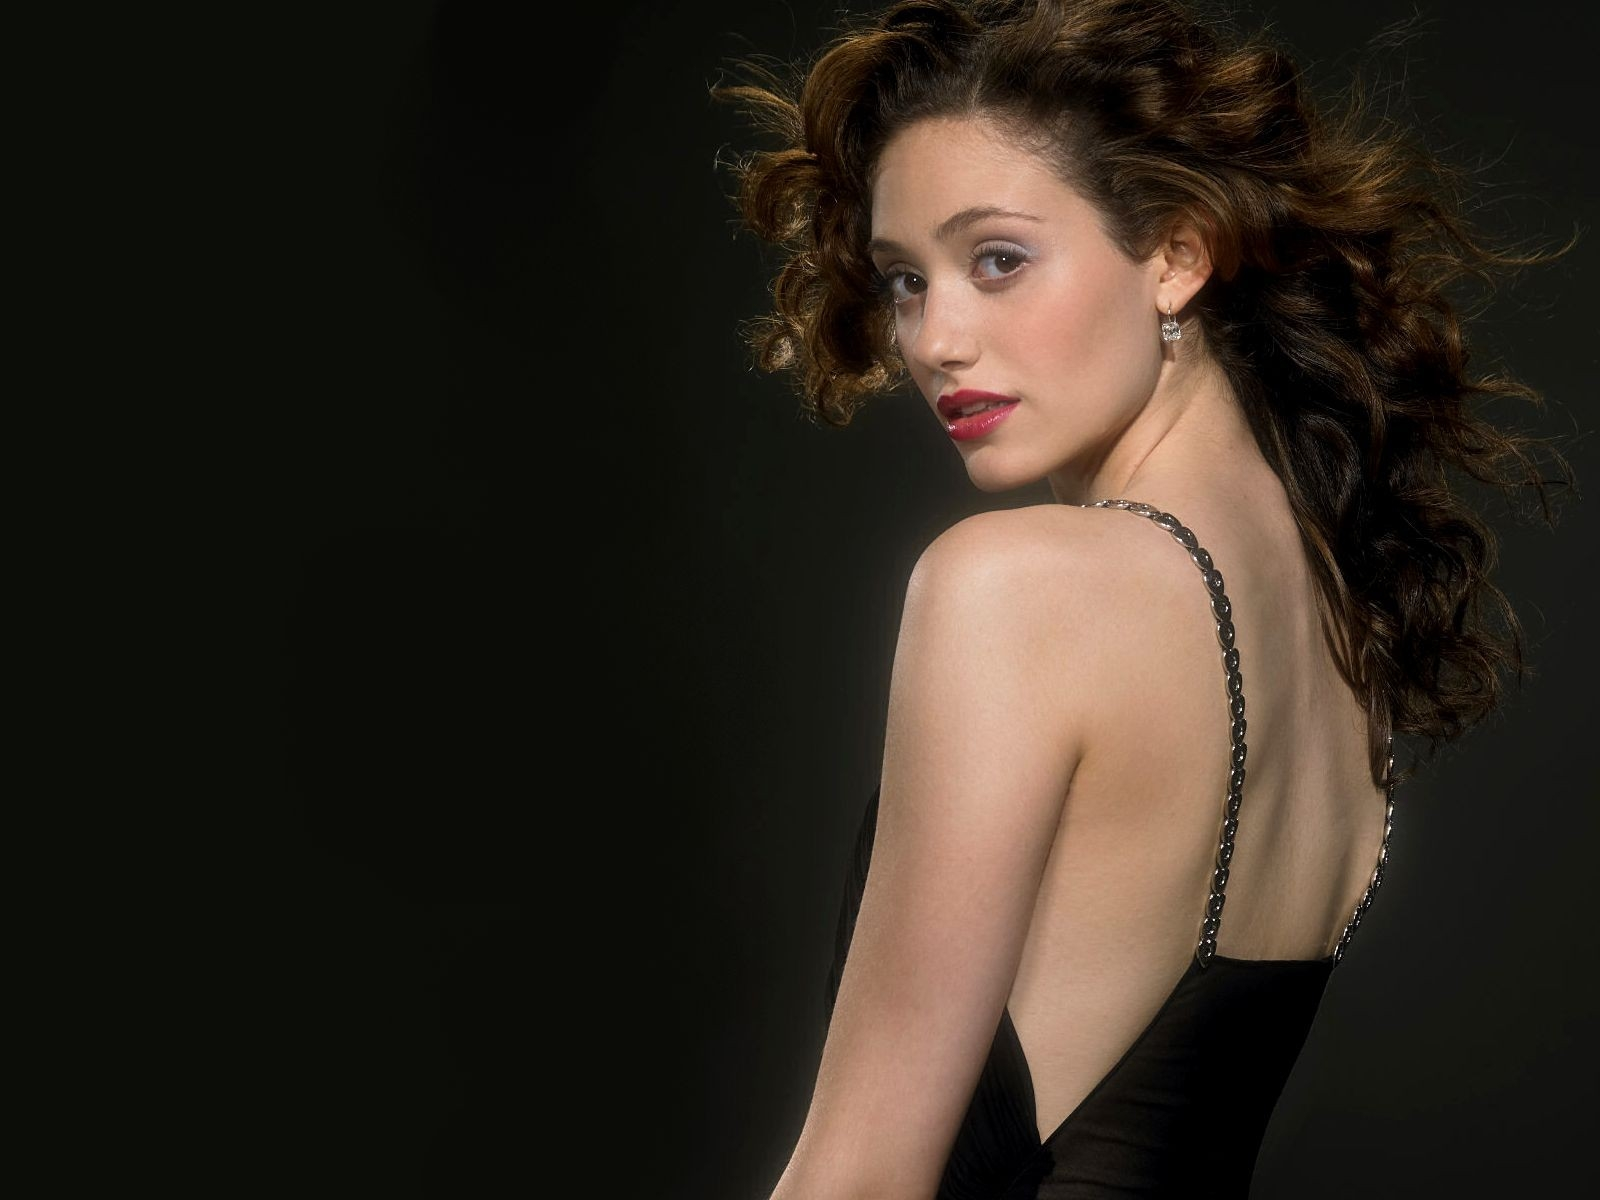 star 10: Sexy Emmy Rossum Wallpapers & Photos Download Emmy Rossum Wallpaper